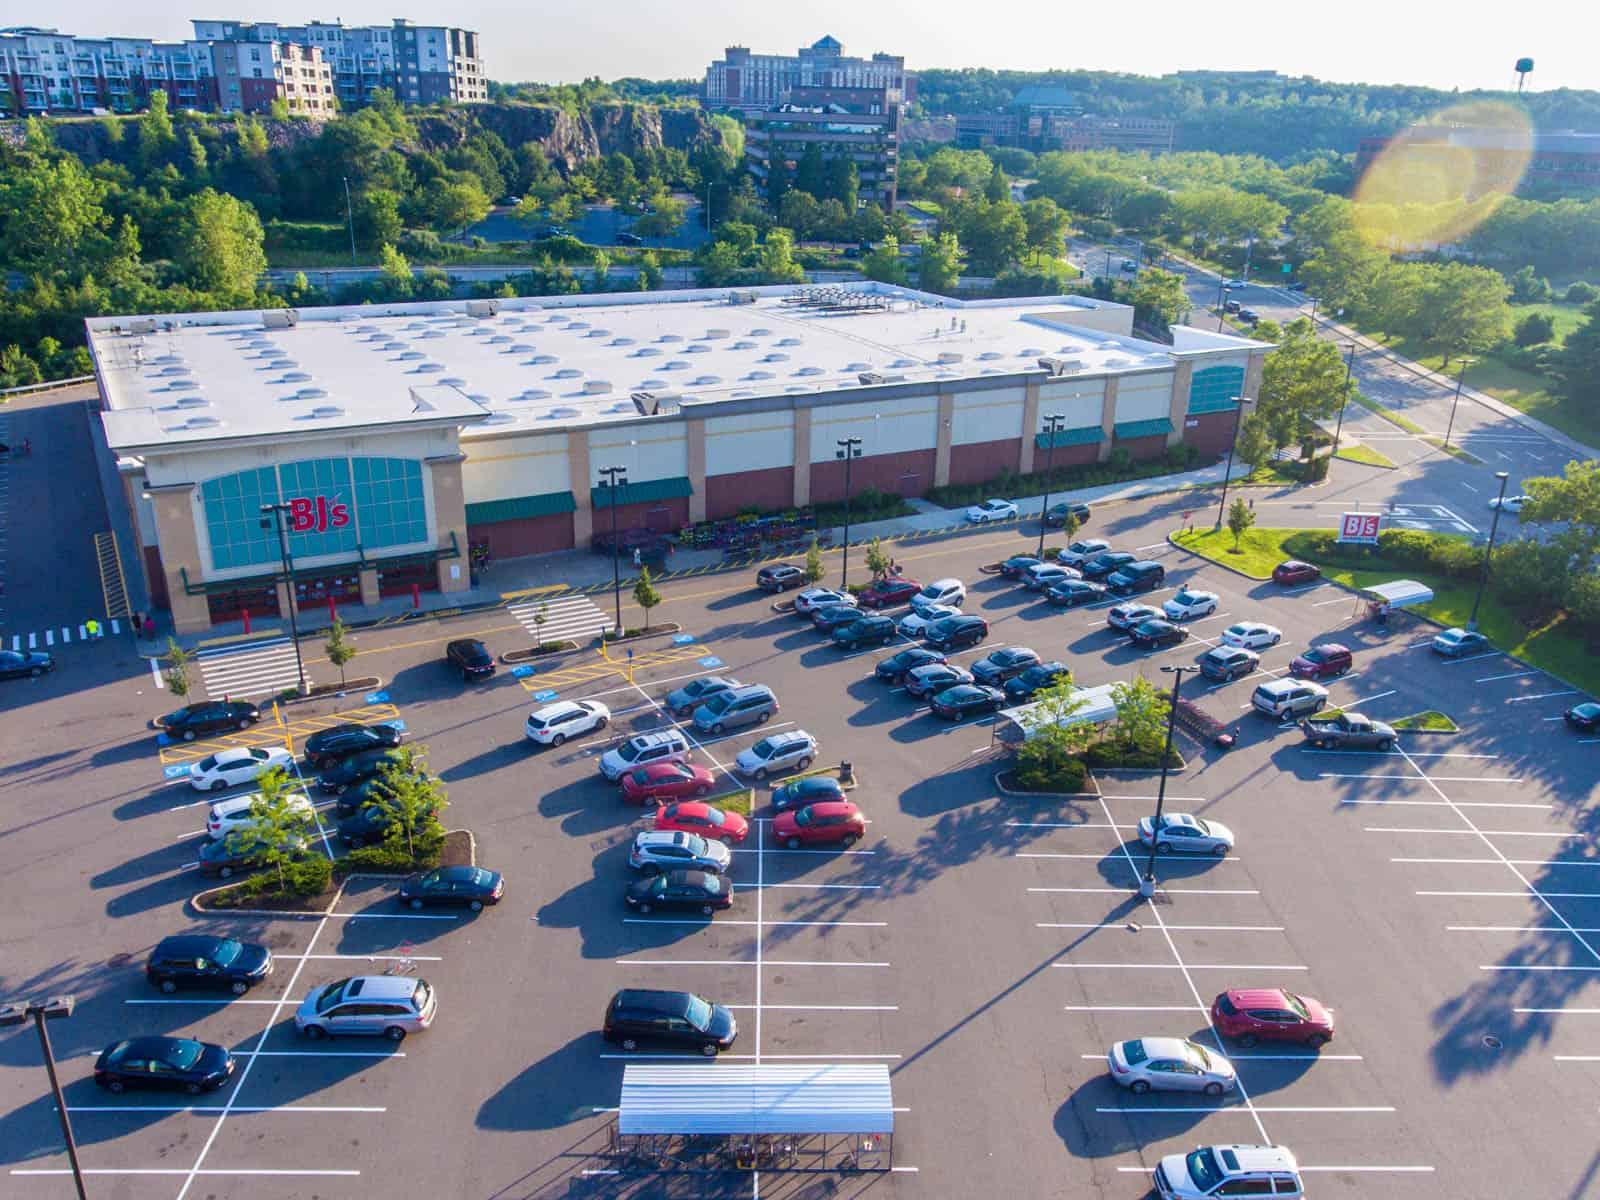 aerial drone photo of BJ's shopping center in Massachusetts